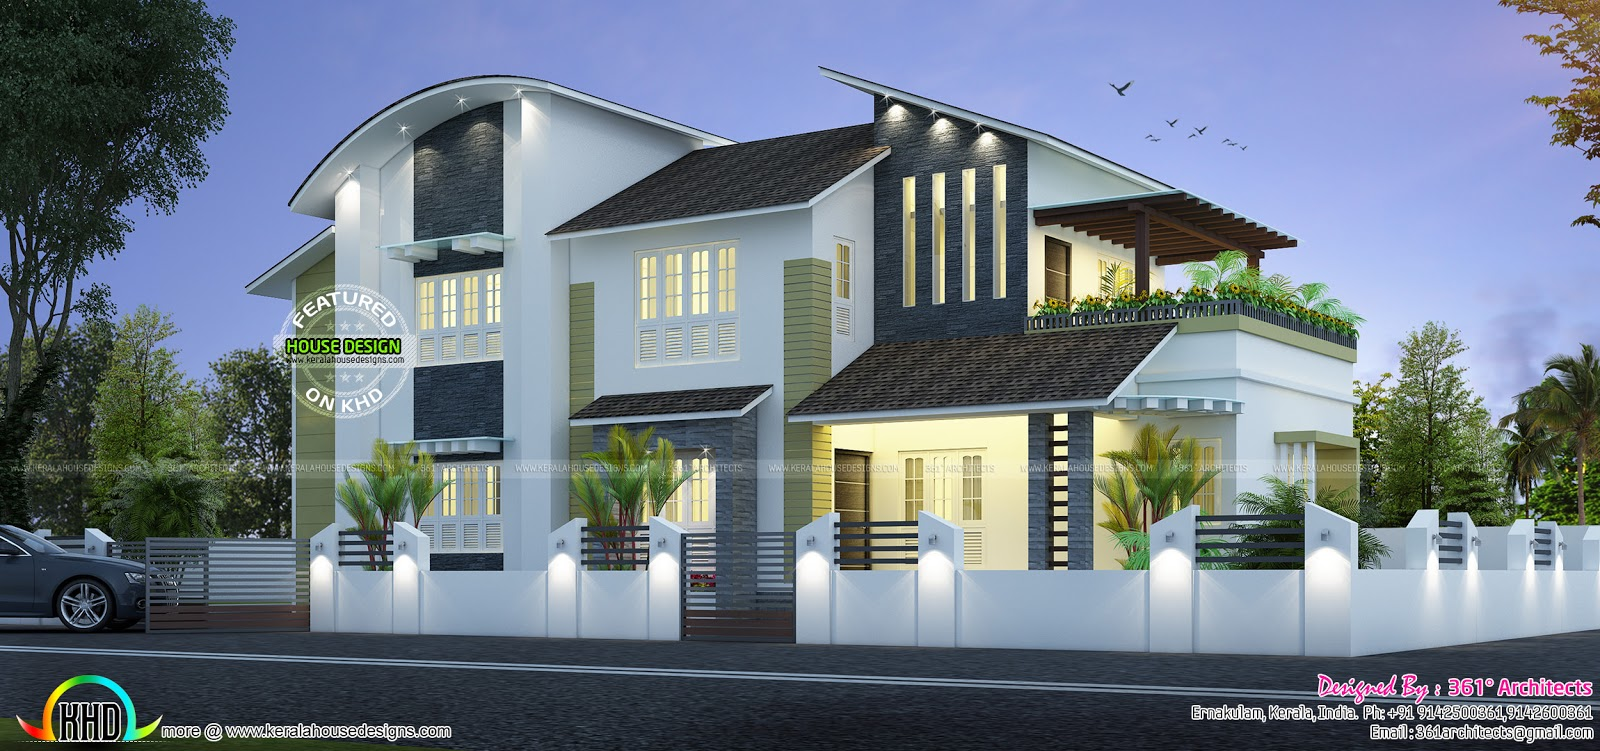 New modern house 35 lakhs kerala home design and floor plans for New design house image